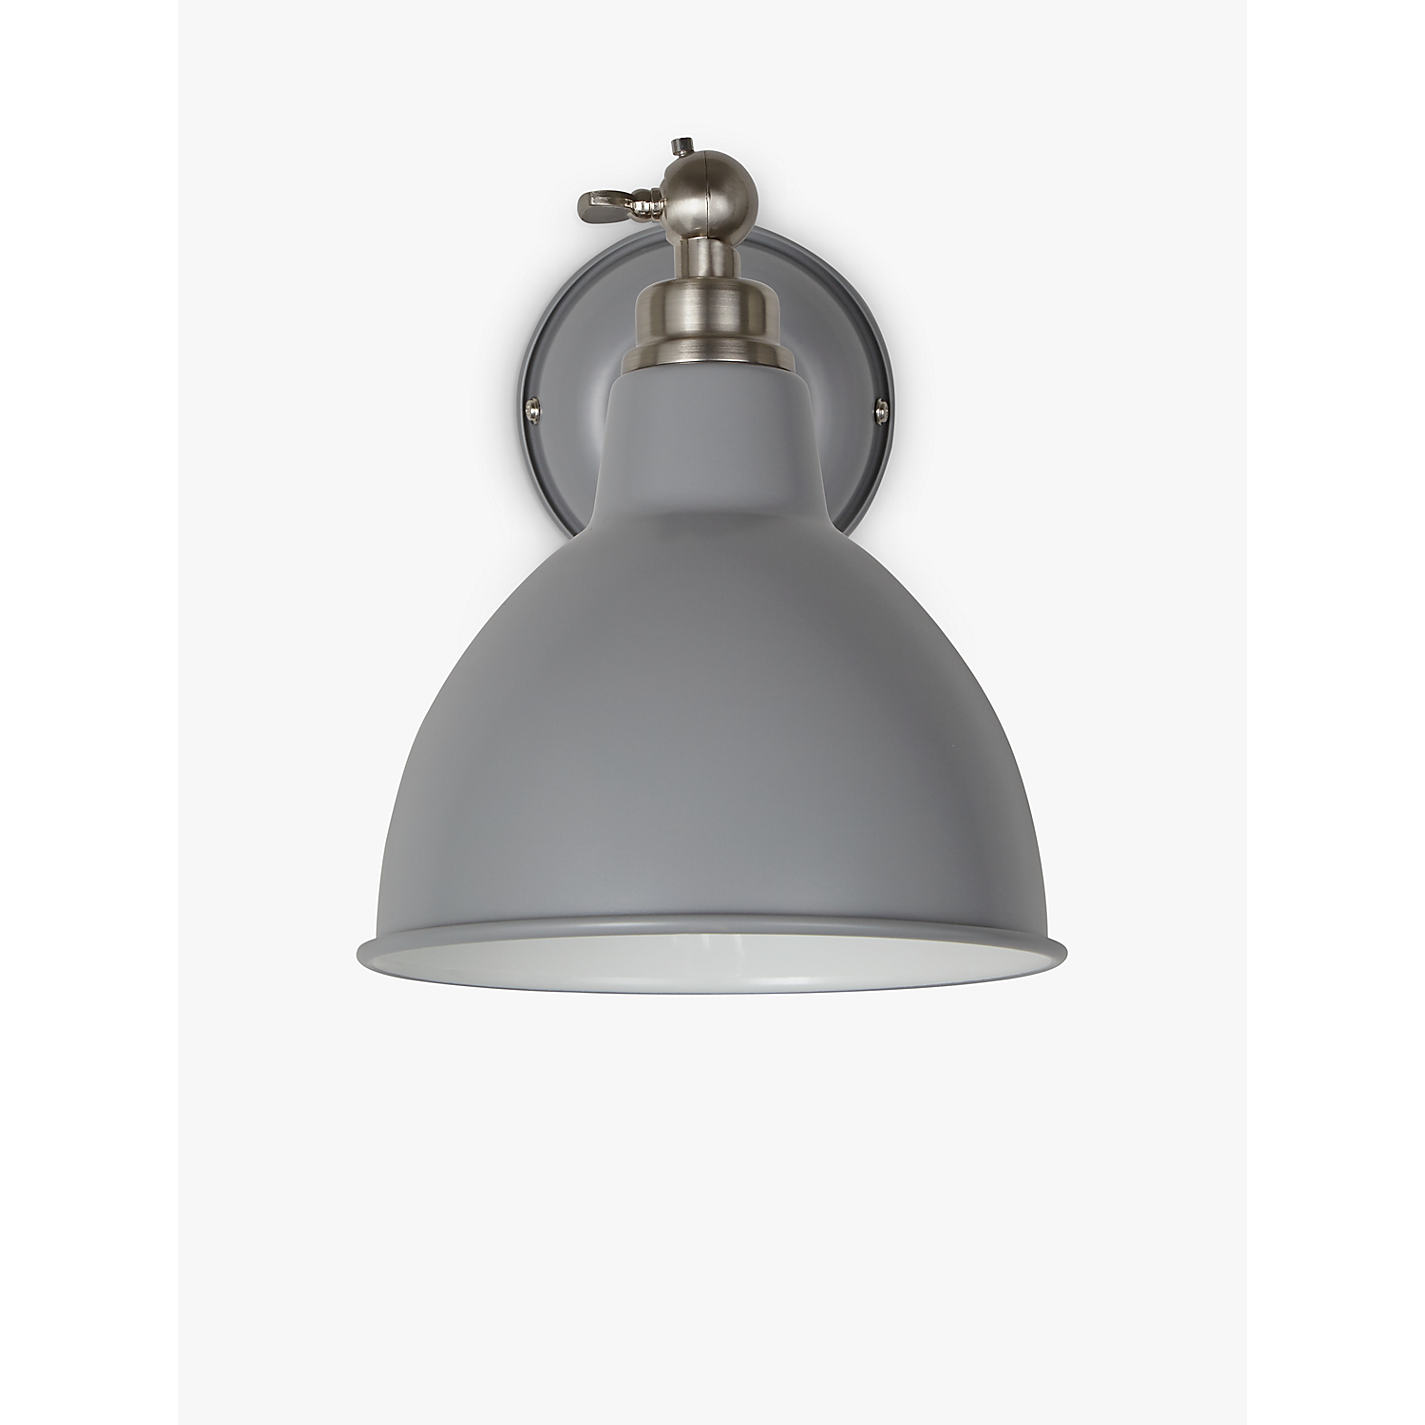 Light Grey Wall buy john lewis aiden wall light, grey | john lewis